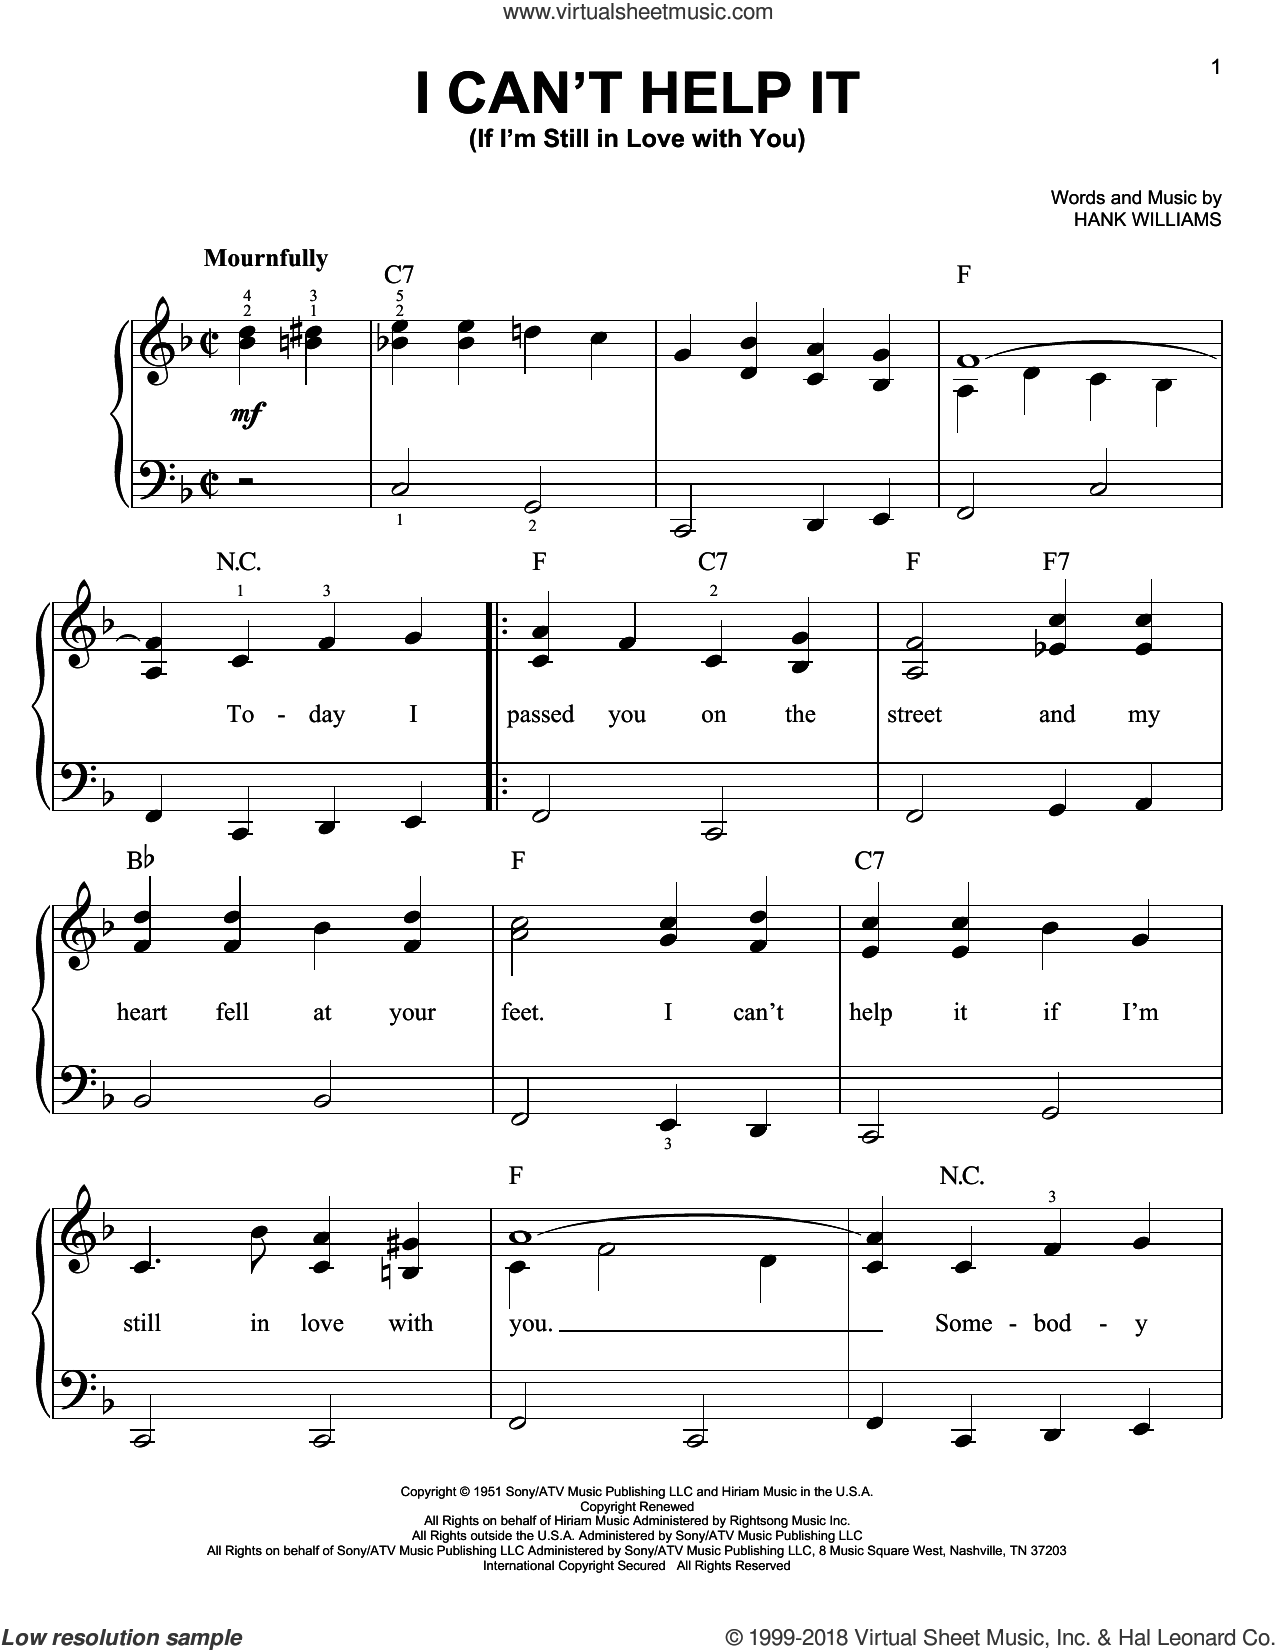 I Can't Help It (If I'm Still In Love With You) sheet music for piano solo by Hank Williams, beginner skill level